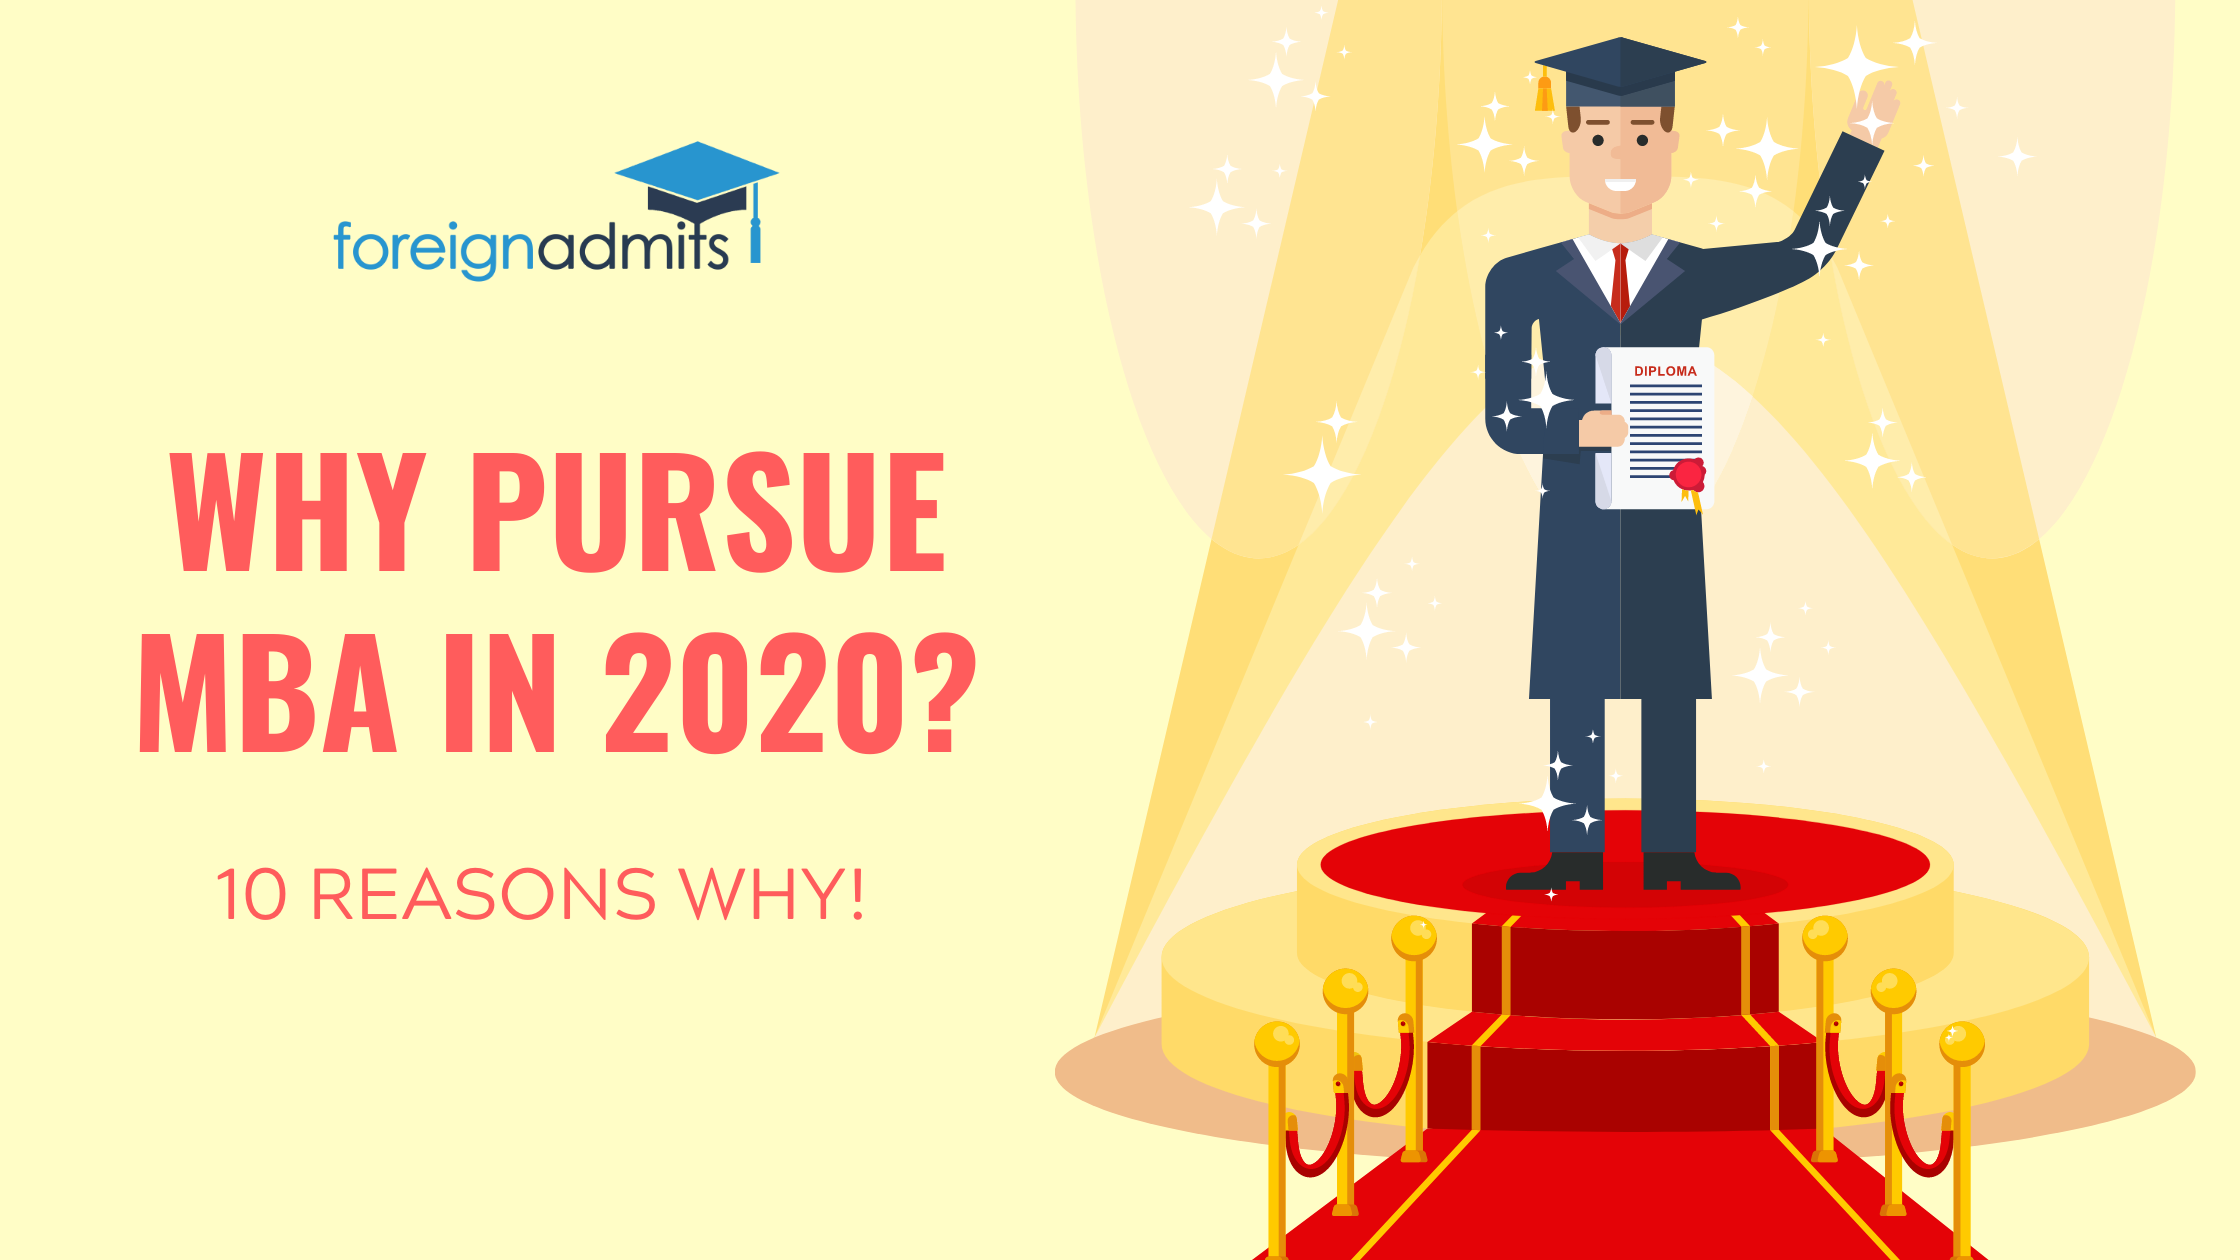 Why pursue MBA in 2020